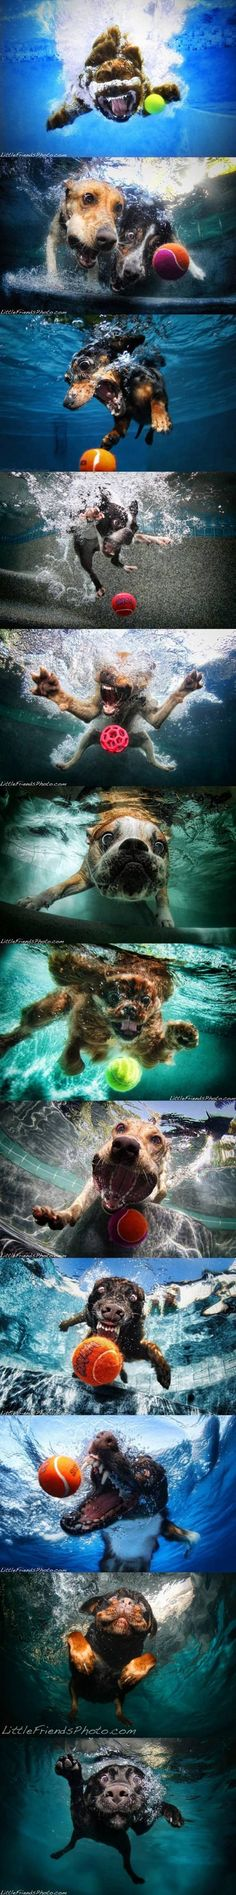 Fabulous photography of dogs diving underwater for tennis balls.